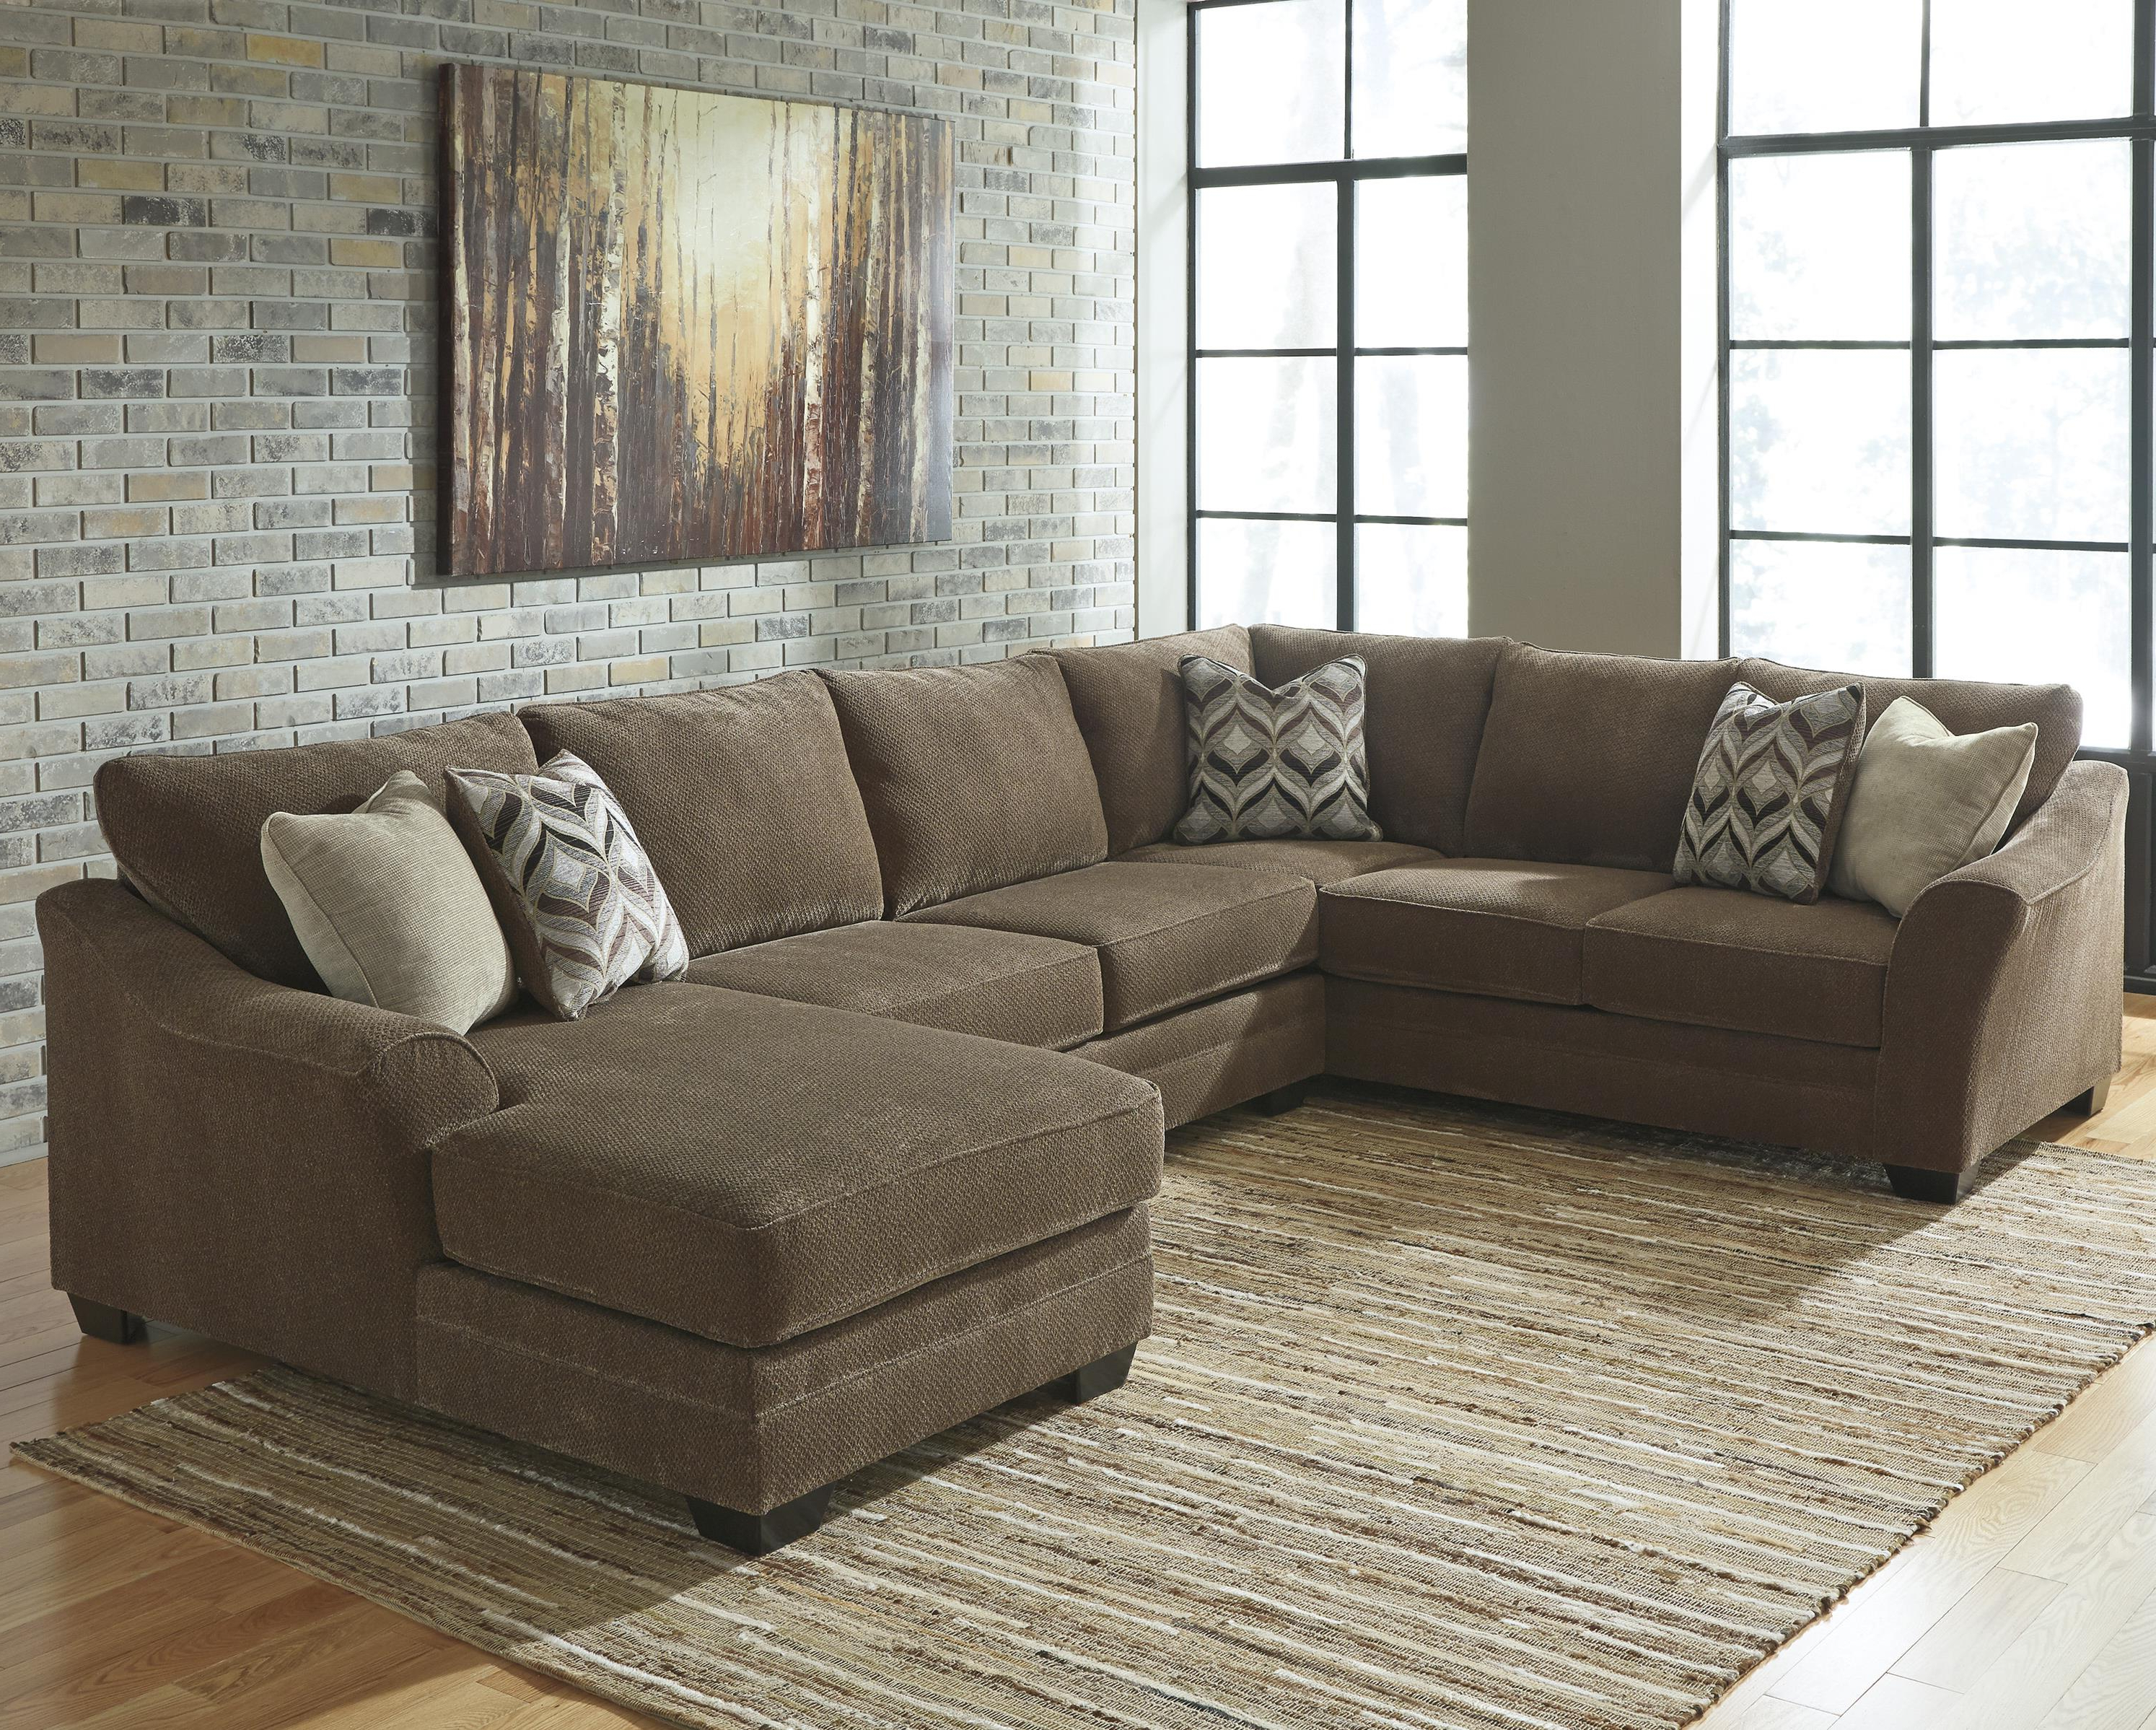 Popular Harper Foam 3 Piece Sectionals With Raf Chaise With 3 Piece Sectional – Locsbyhelenelorasa (View 16 of 20)